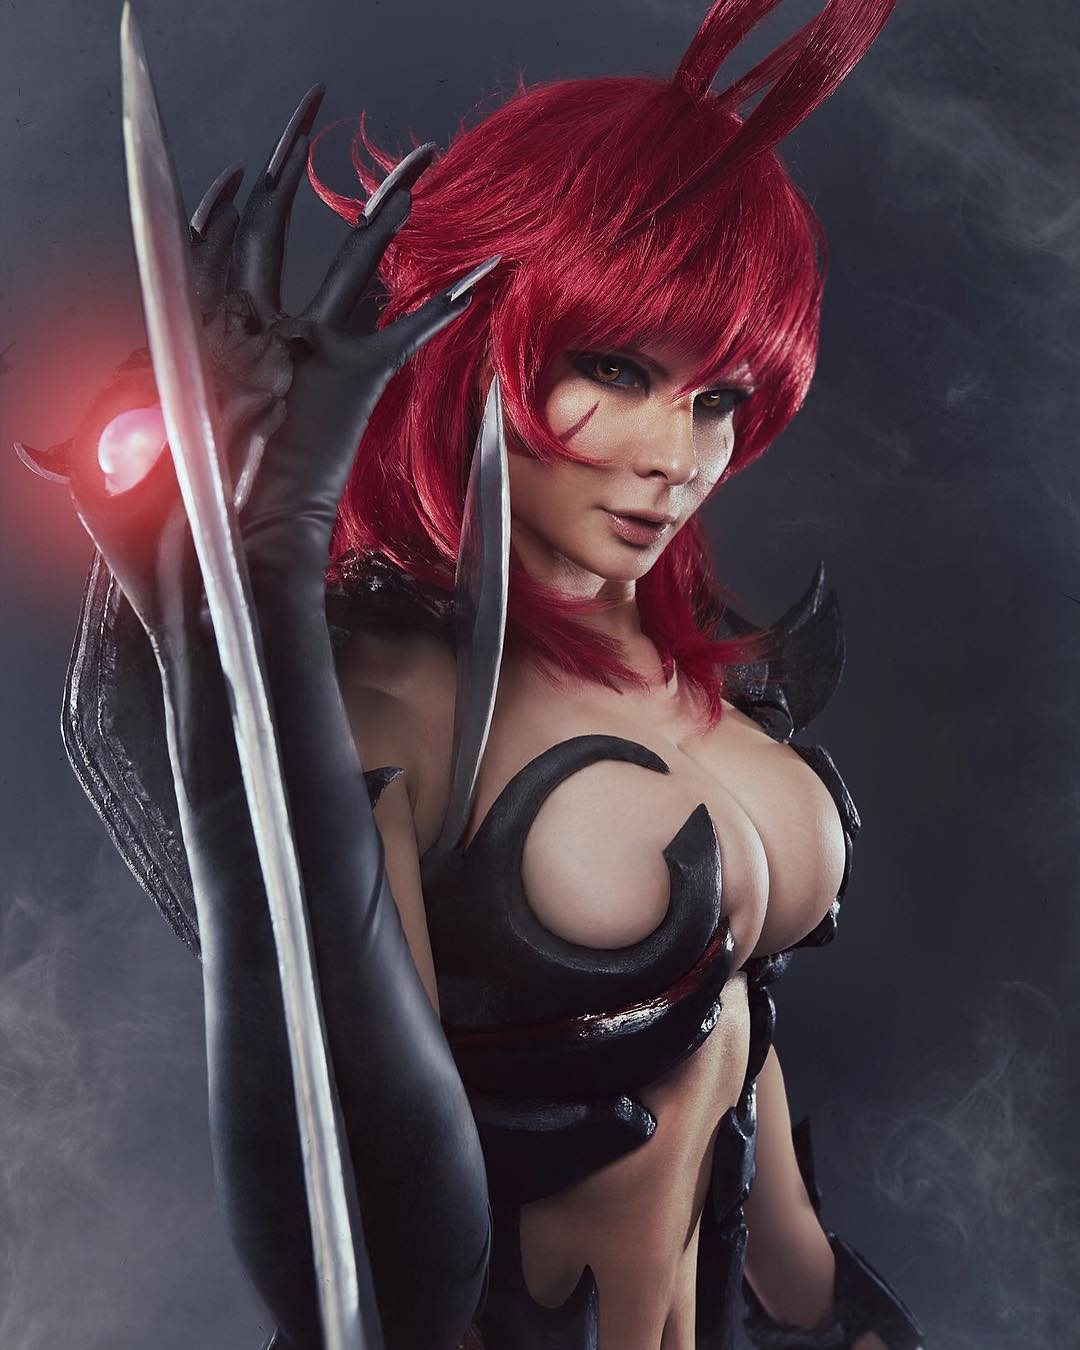 Jannet Incosplay Sexy Big Boobs Pics